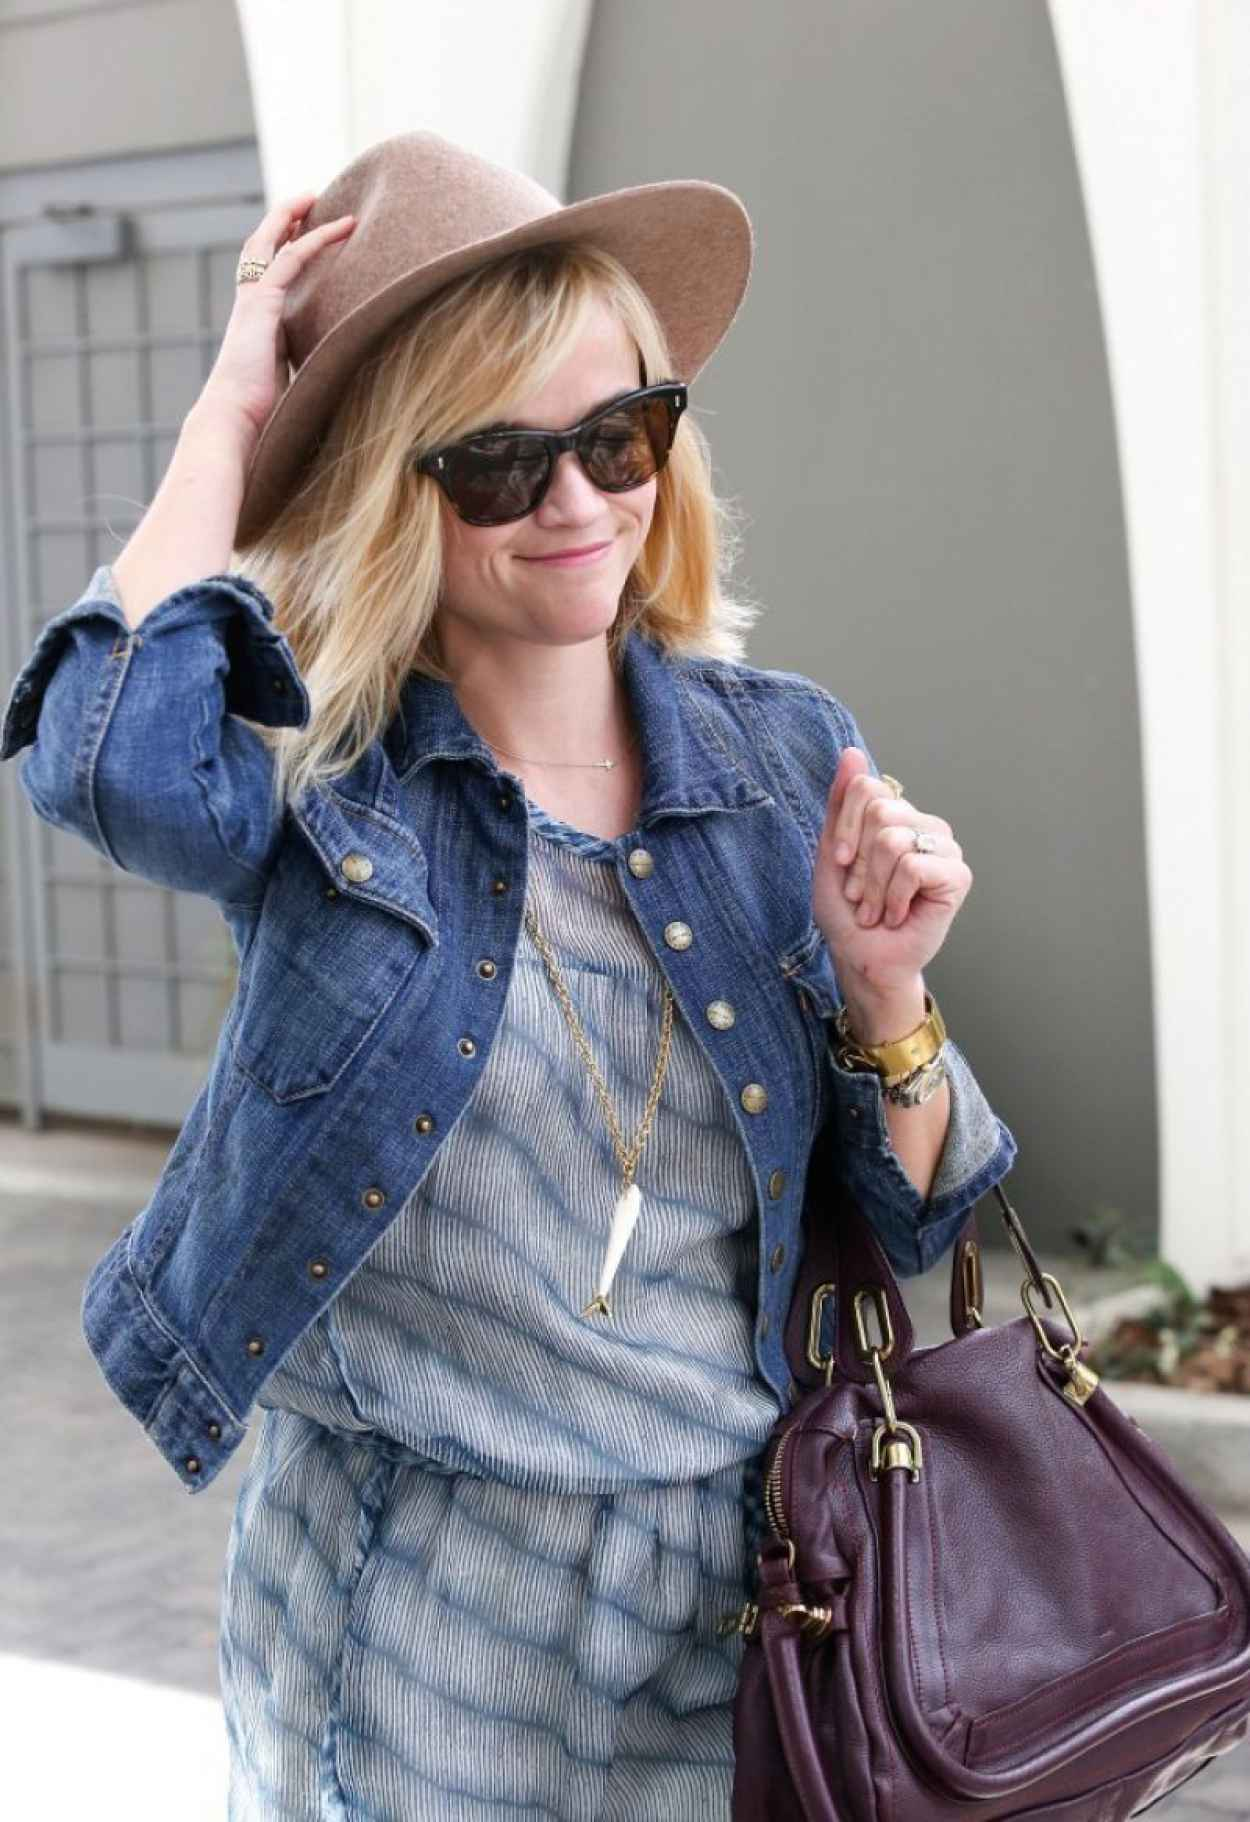 Reese Witherspoon Casual Style - Out in LA - March 2015-1